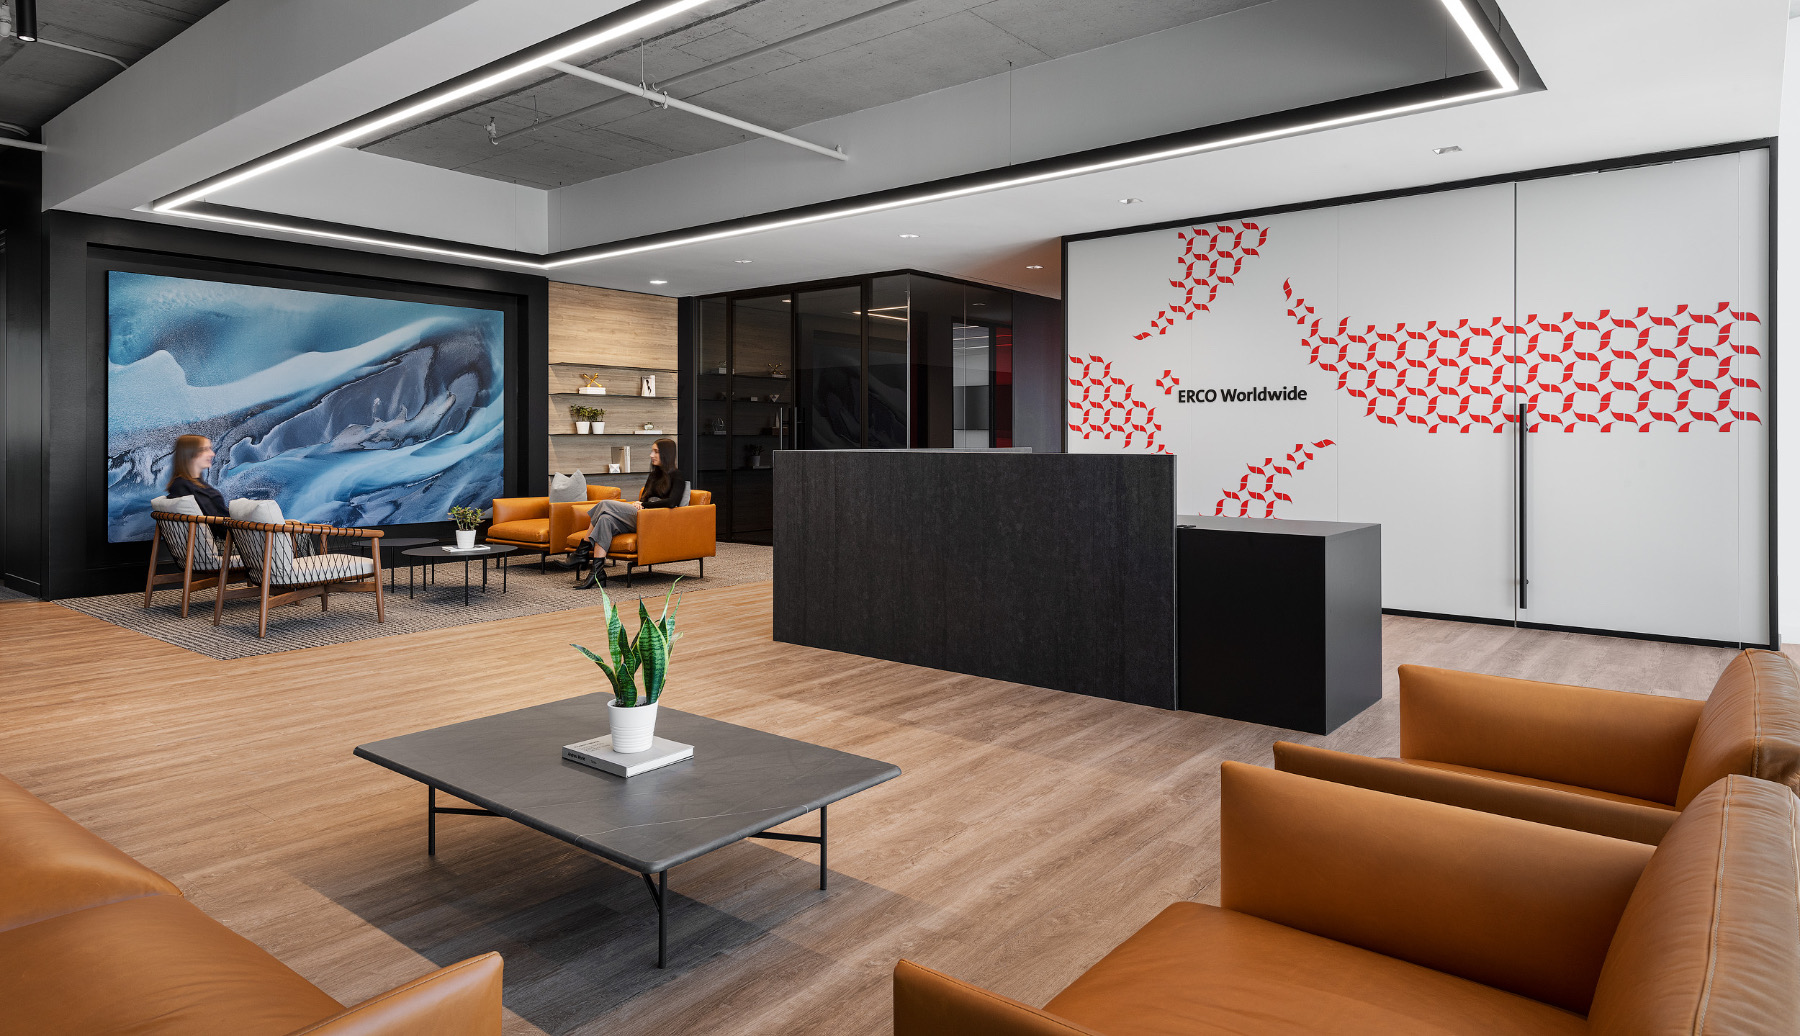 A Look Inside ERCO Worldwide's Mississauga Office